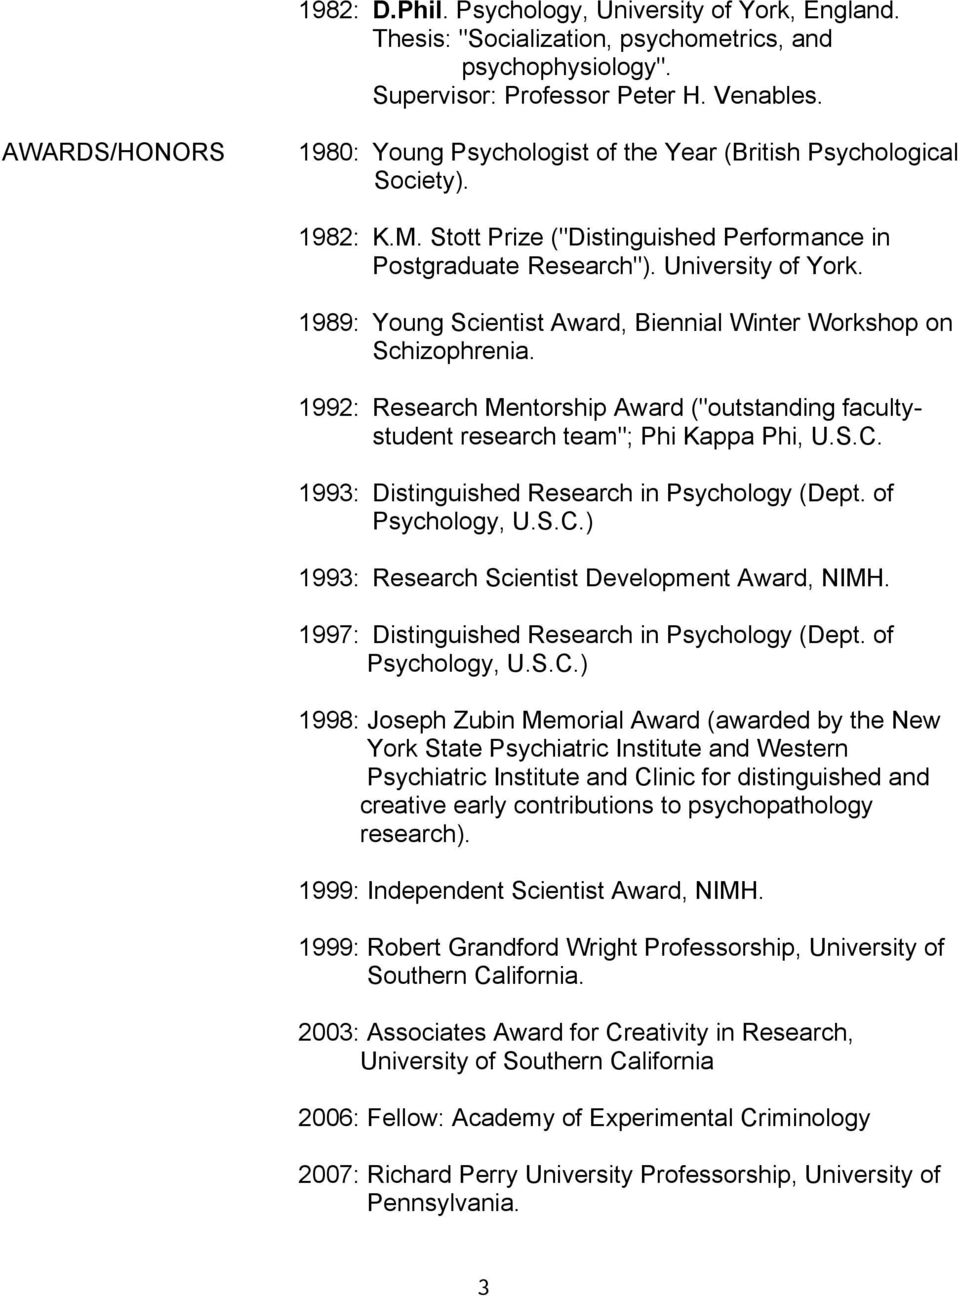 "1989: Young Scientist Award, Biennial Winter Workshop on Schizophrenia. 1992: Research Mentorship Award (""outstanding facultystudent research team""; Phi Kappa Phi, U.S.C."